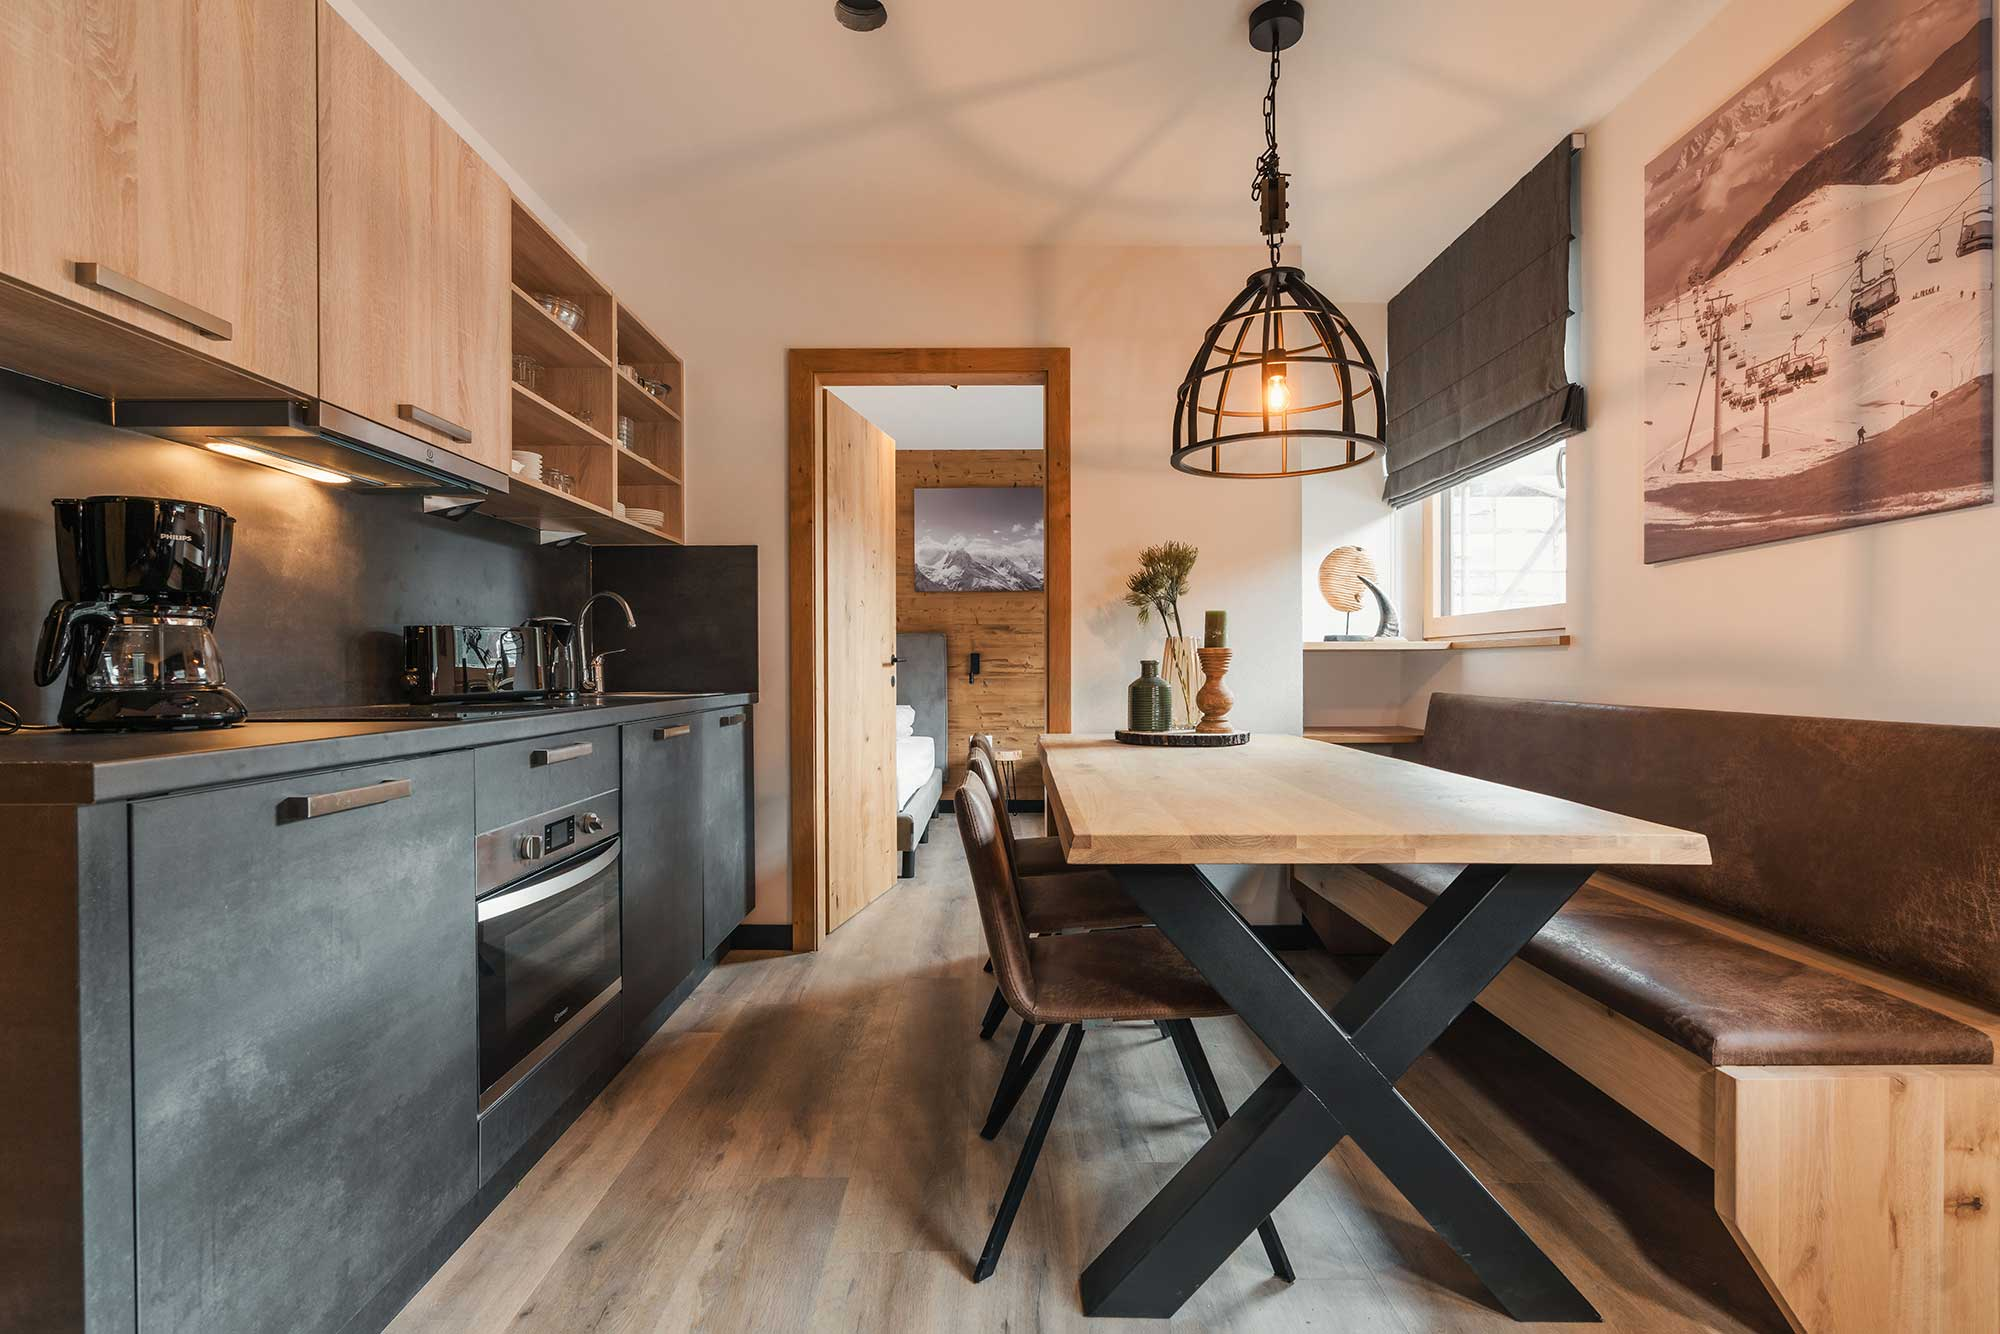 Fully equipped kitchen - Alpin Resort Montafon apartment